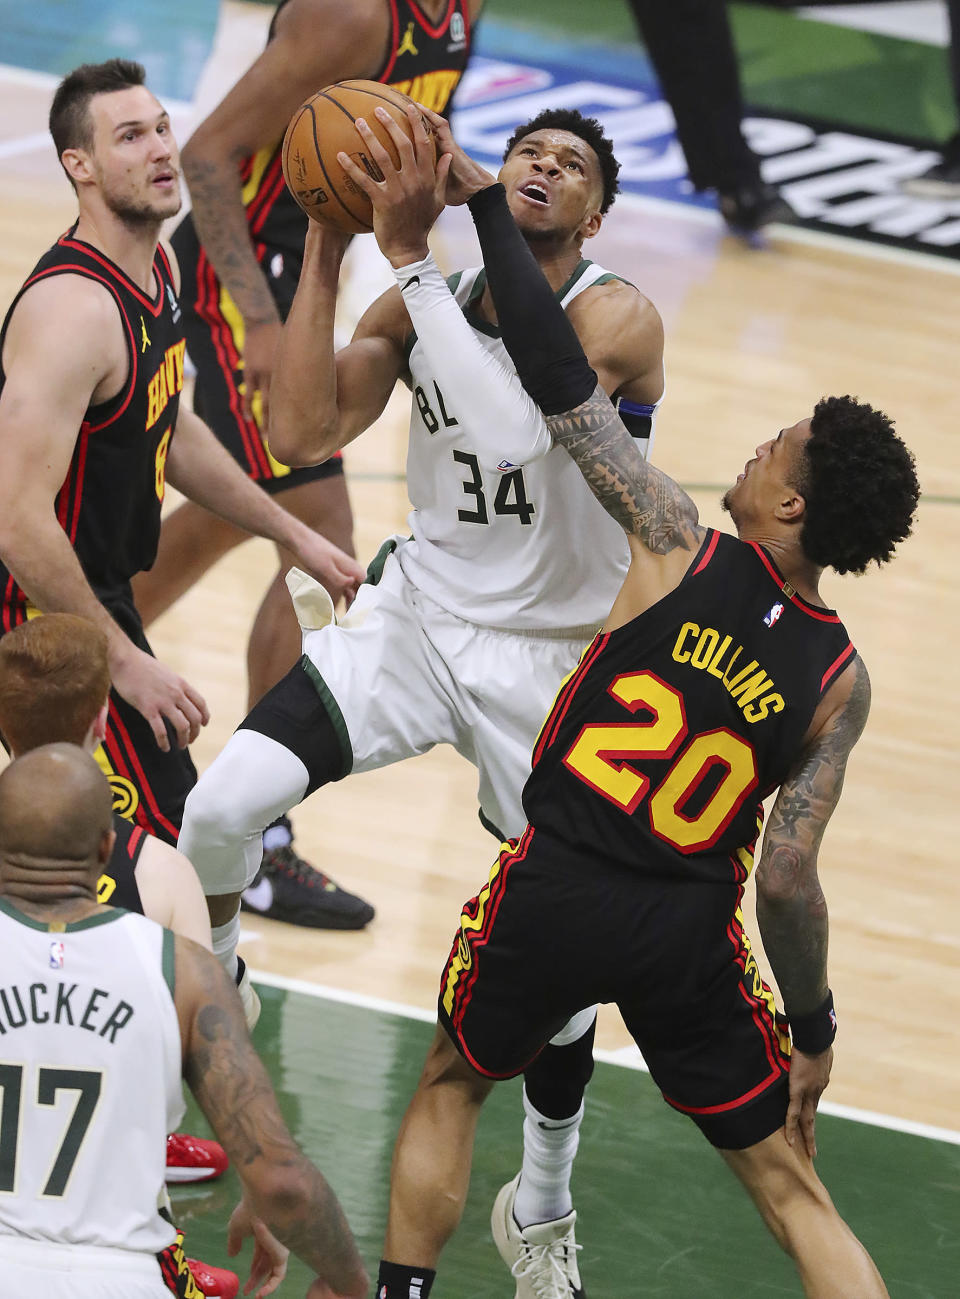 Atlanta Hawks forward John Collins fouls Milwaukee Bucks forward Giannis Antetokounmpo on his way to the basket during the first half of game 2 in the NBA Eastern Conference Finals on Friday, June 25, 2021, in Milwaukee. (Curtis Compton/Atlanta Journal-Constitution via AP)